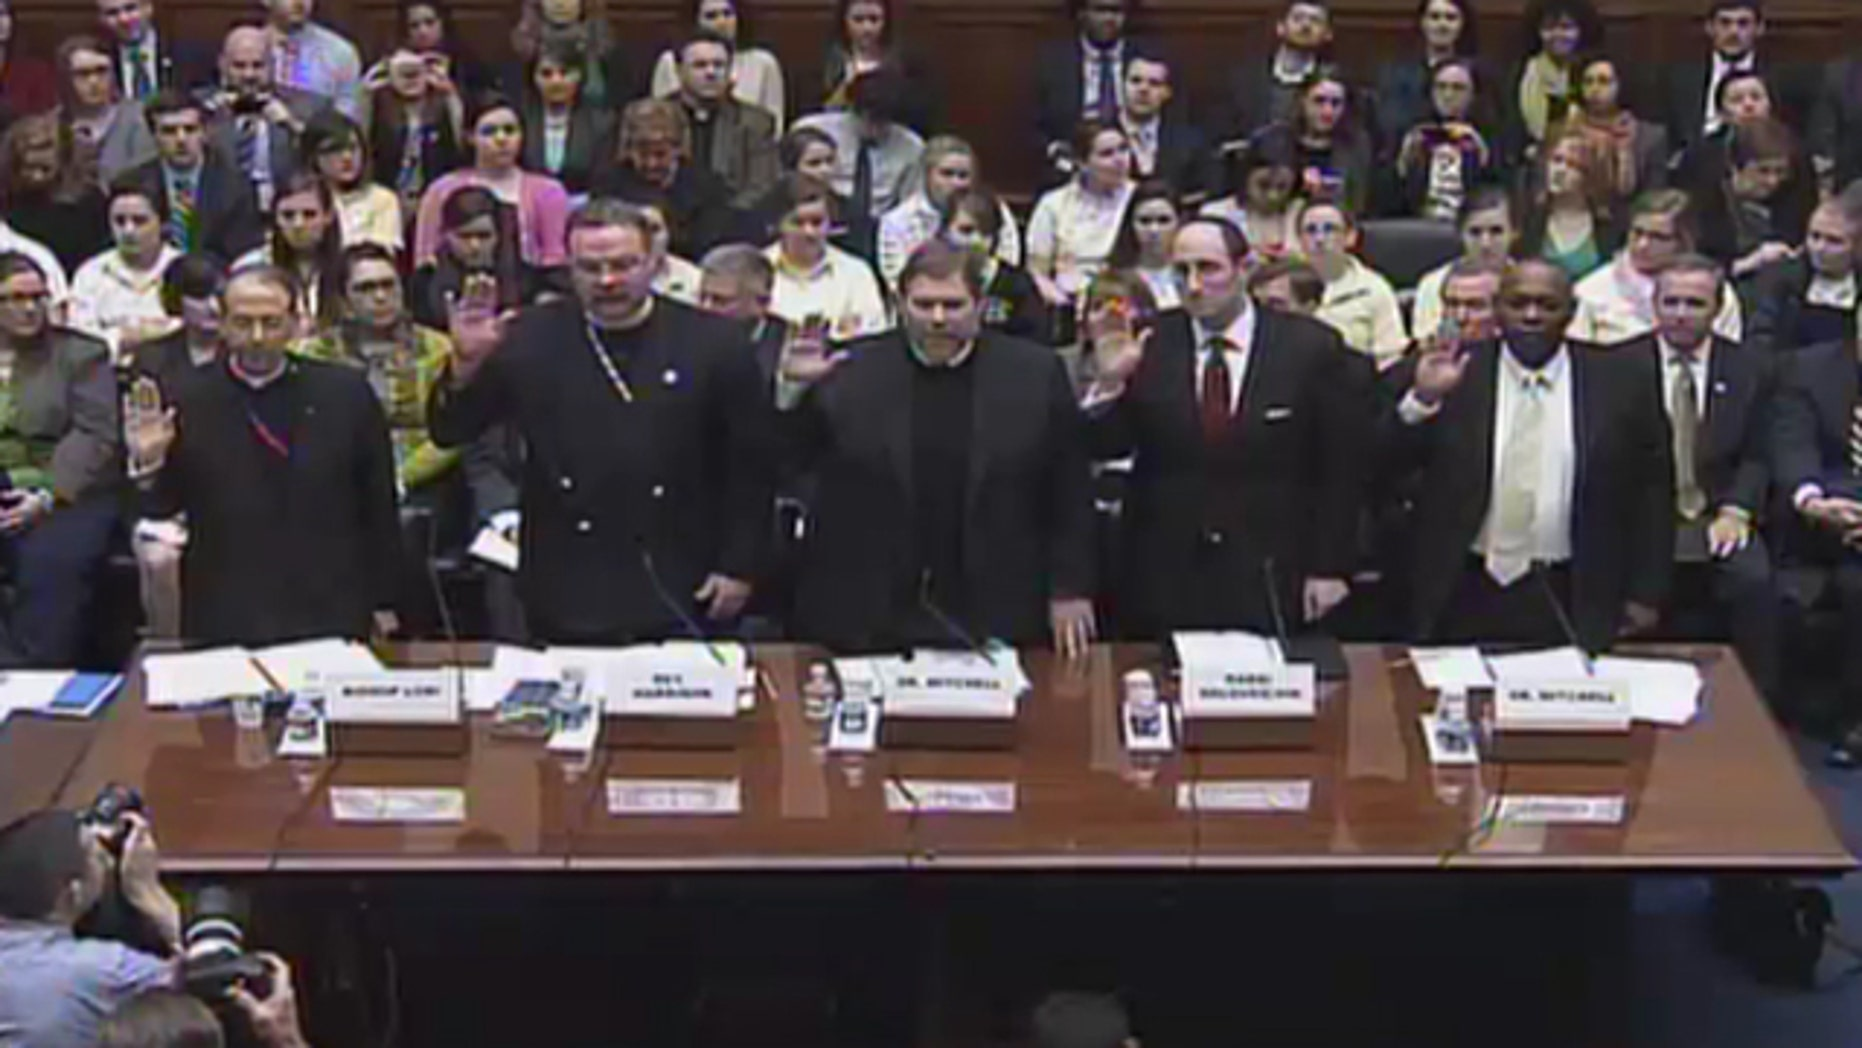 Feb. 16, 2012: Religious leaders take an oath before testifying on Capitol Hill about the administration's contraceptive policy and religious freedom.